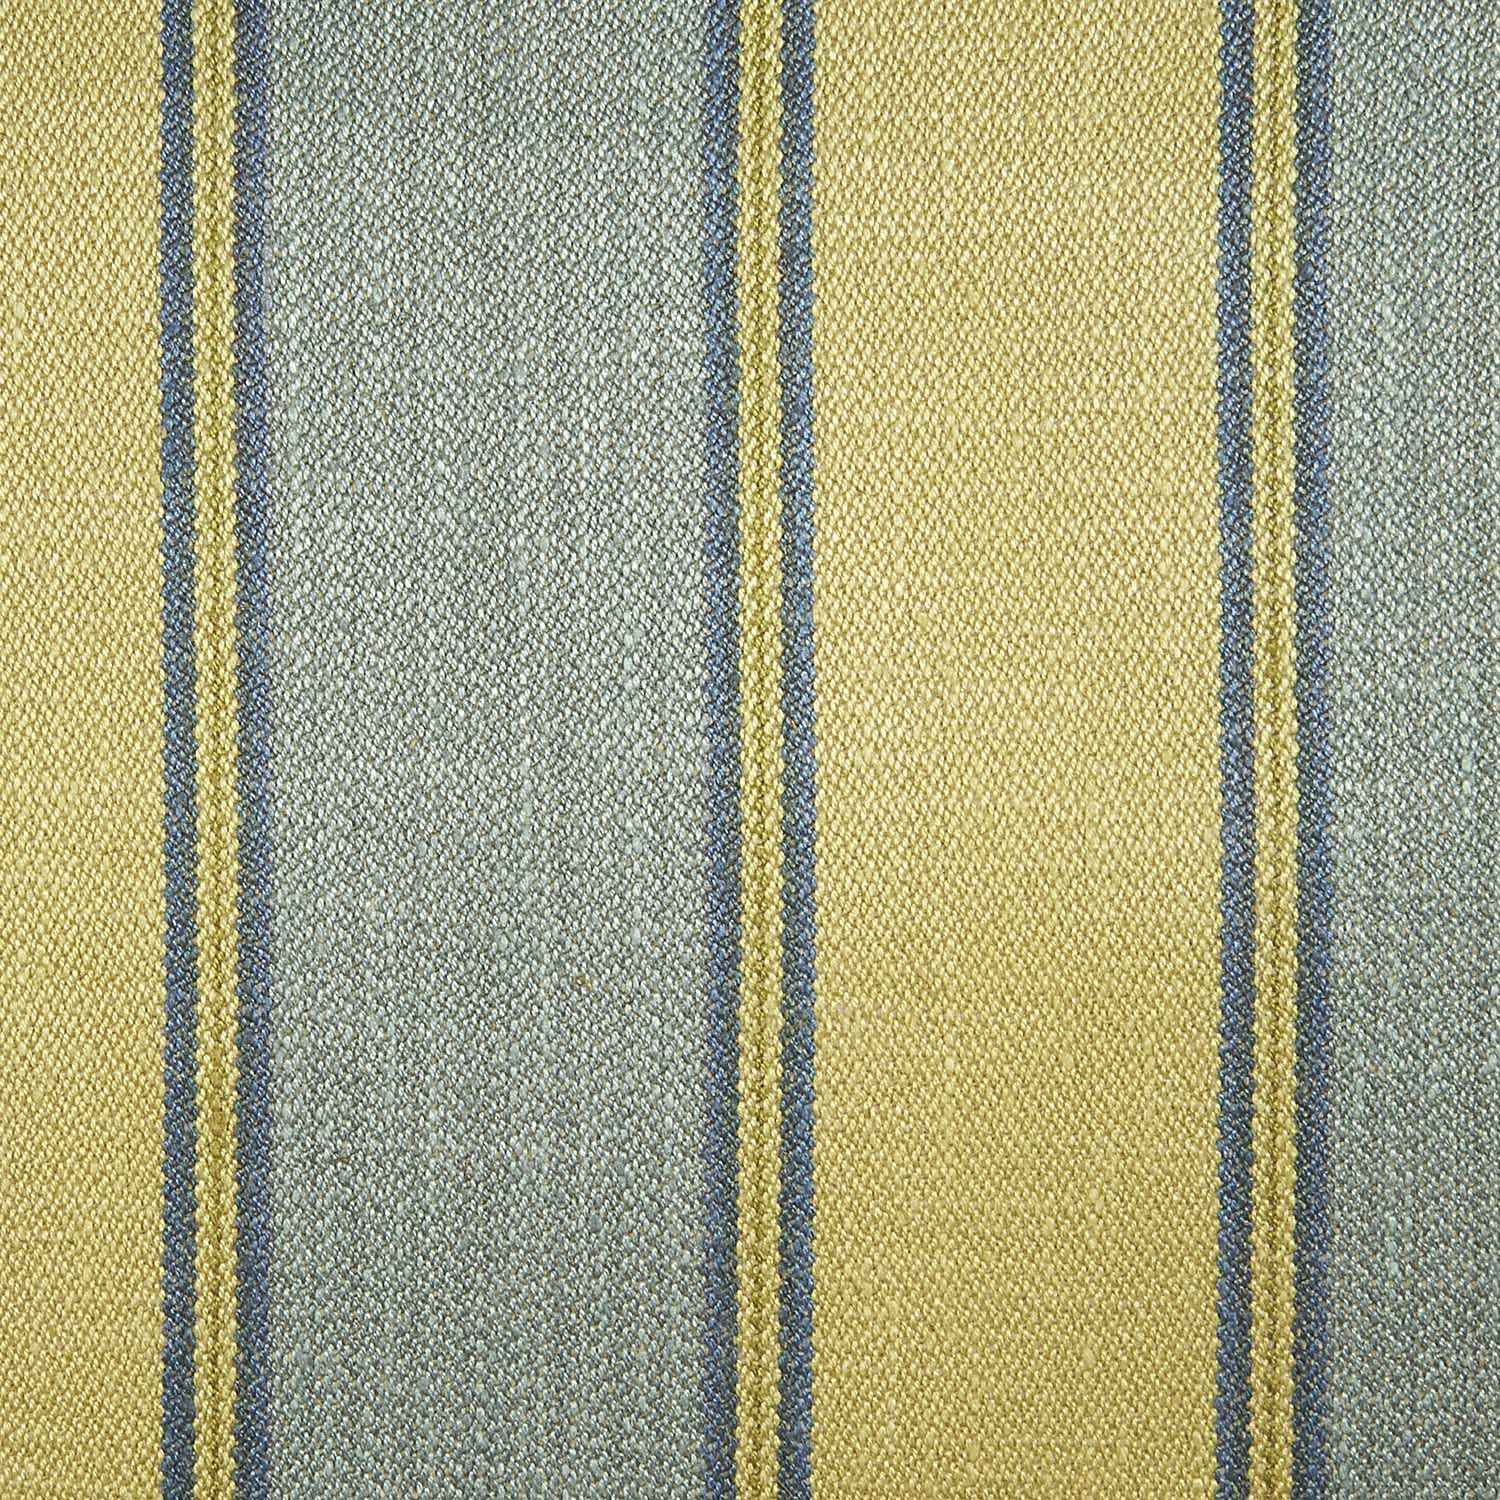 """<p><strong>LAUNCESTON STRIPE<span style=""""color:red""""> discontinued</span></strong>blue/green 1300-02 / Contact for stock availability</a></p>"""